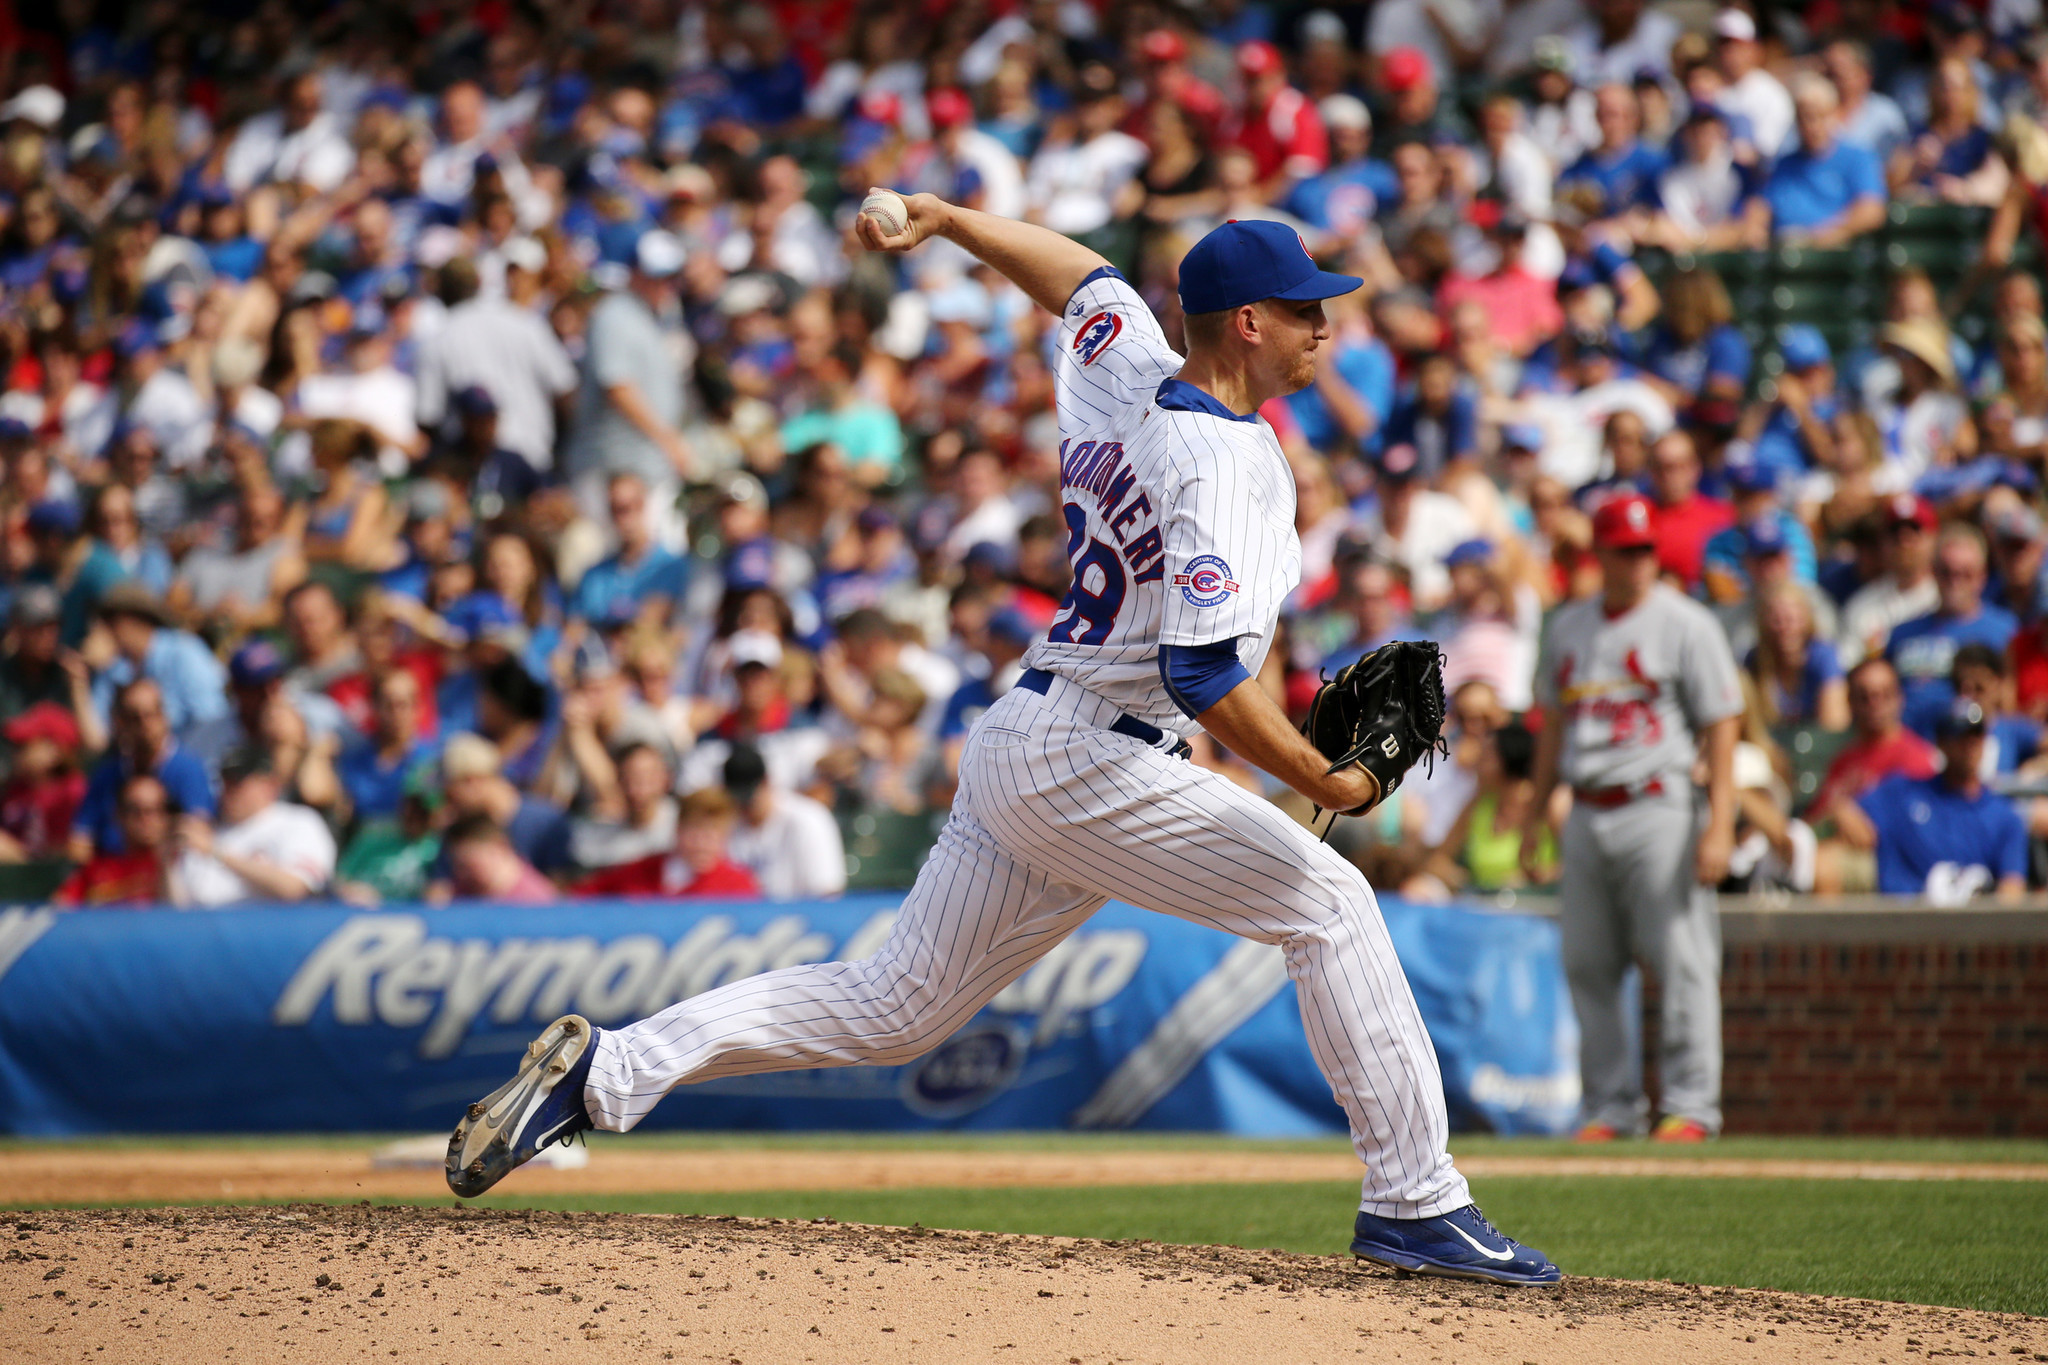 Ct-series-cubs-giants-spt-0901-20160831